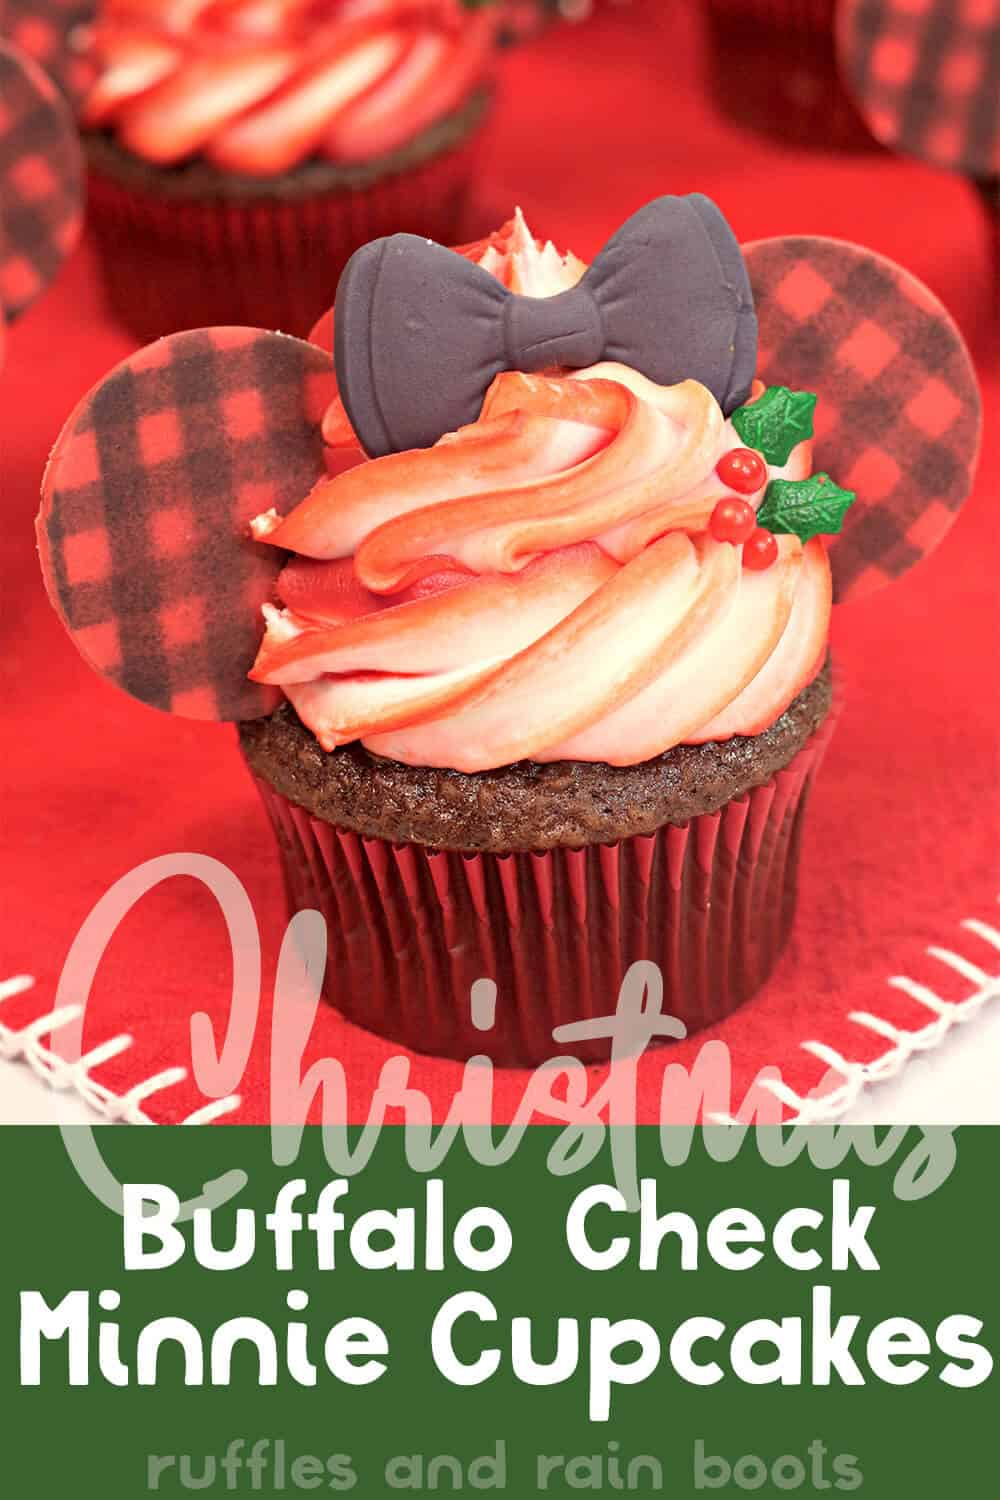 easy disney inspired cupcakes with text which reads christmas buffalo check minnie cupcakes